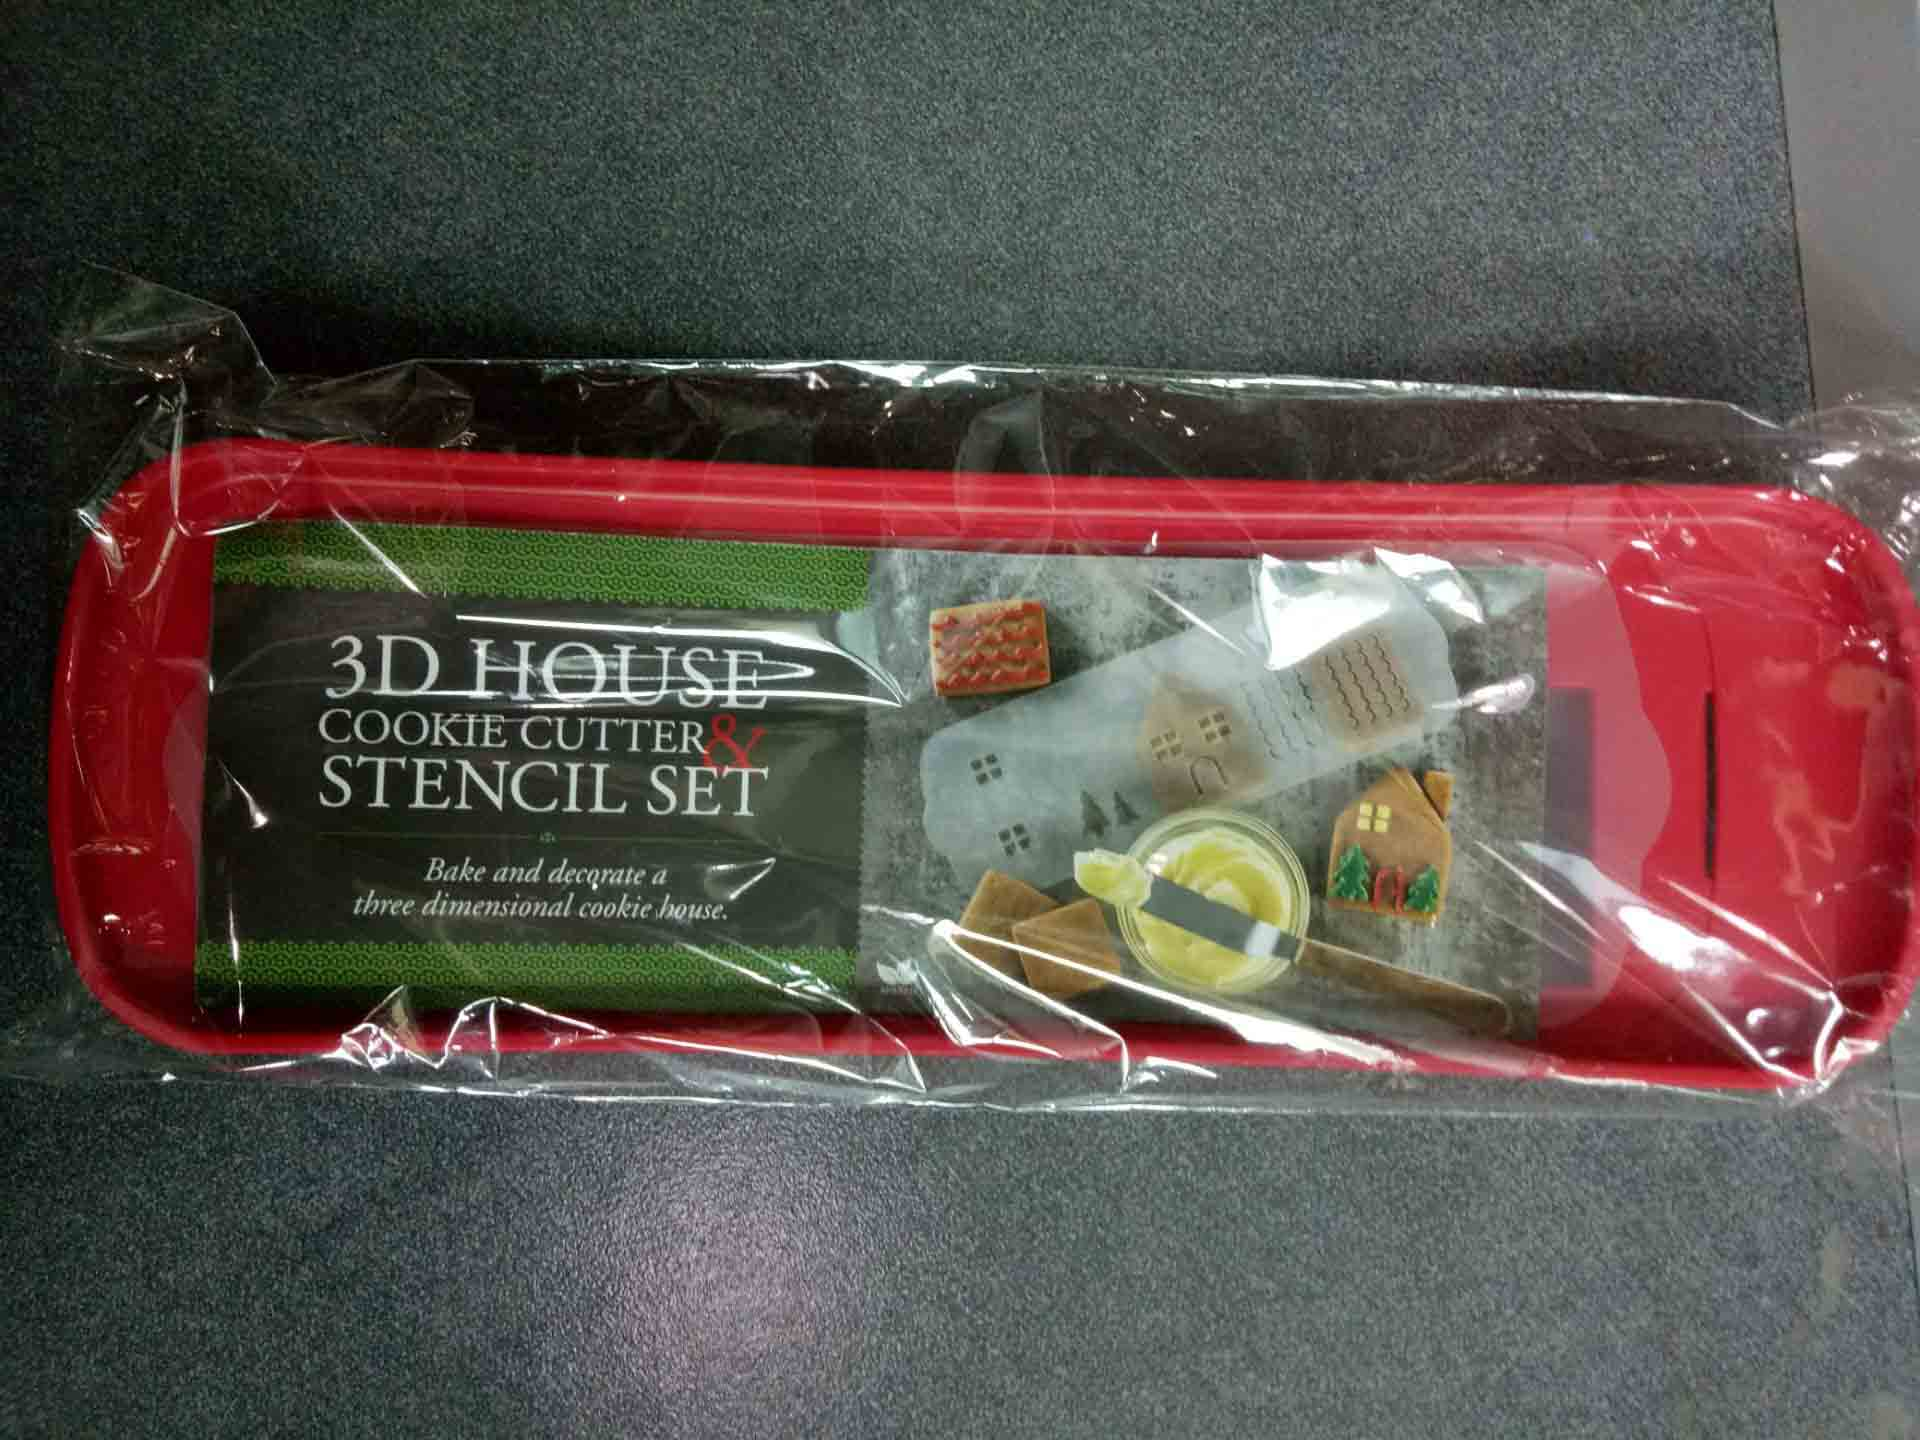 3D HOUSE COOKIE CUTTER-ZM-KW2287